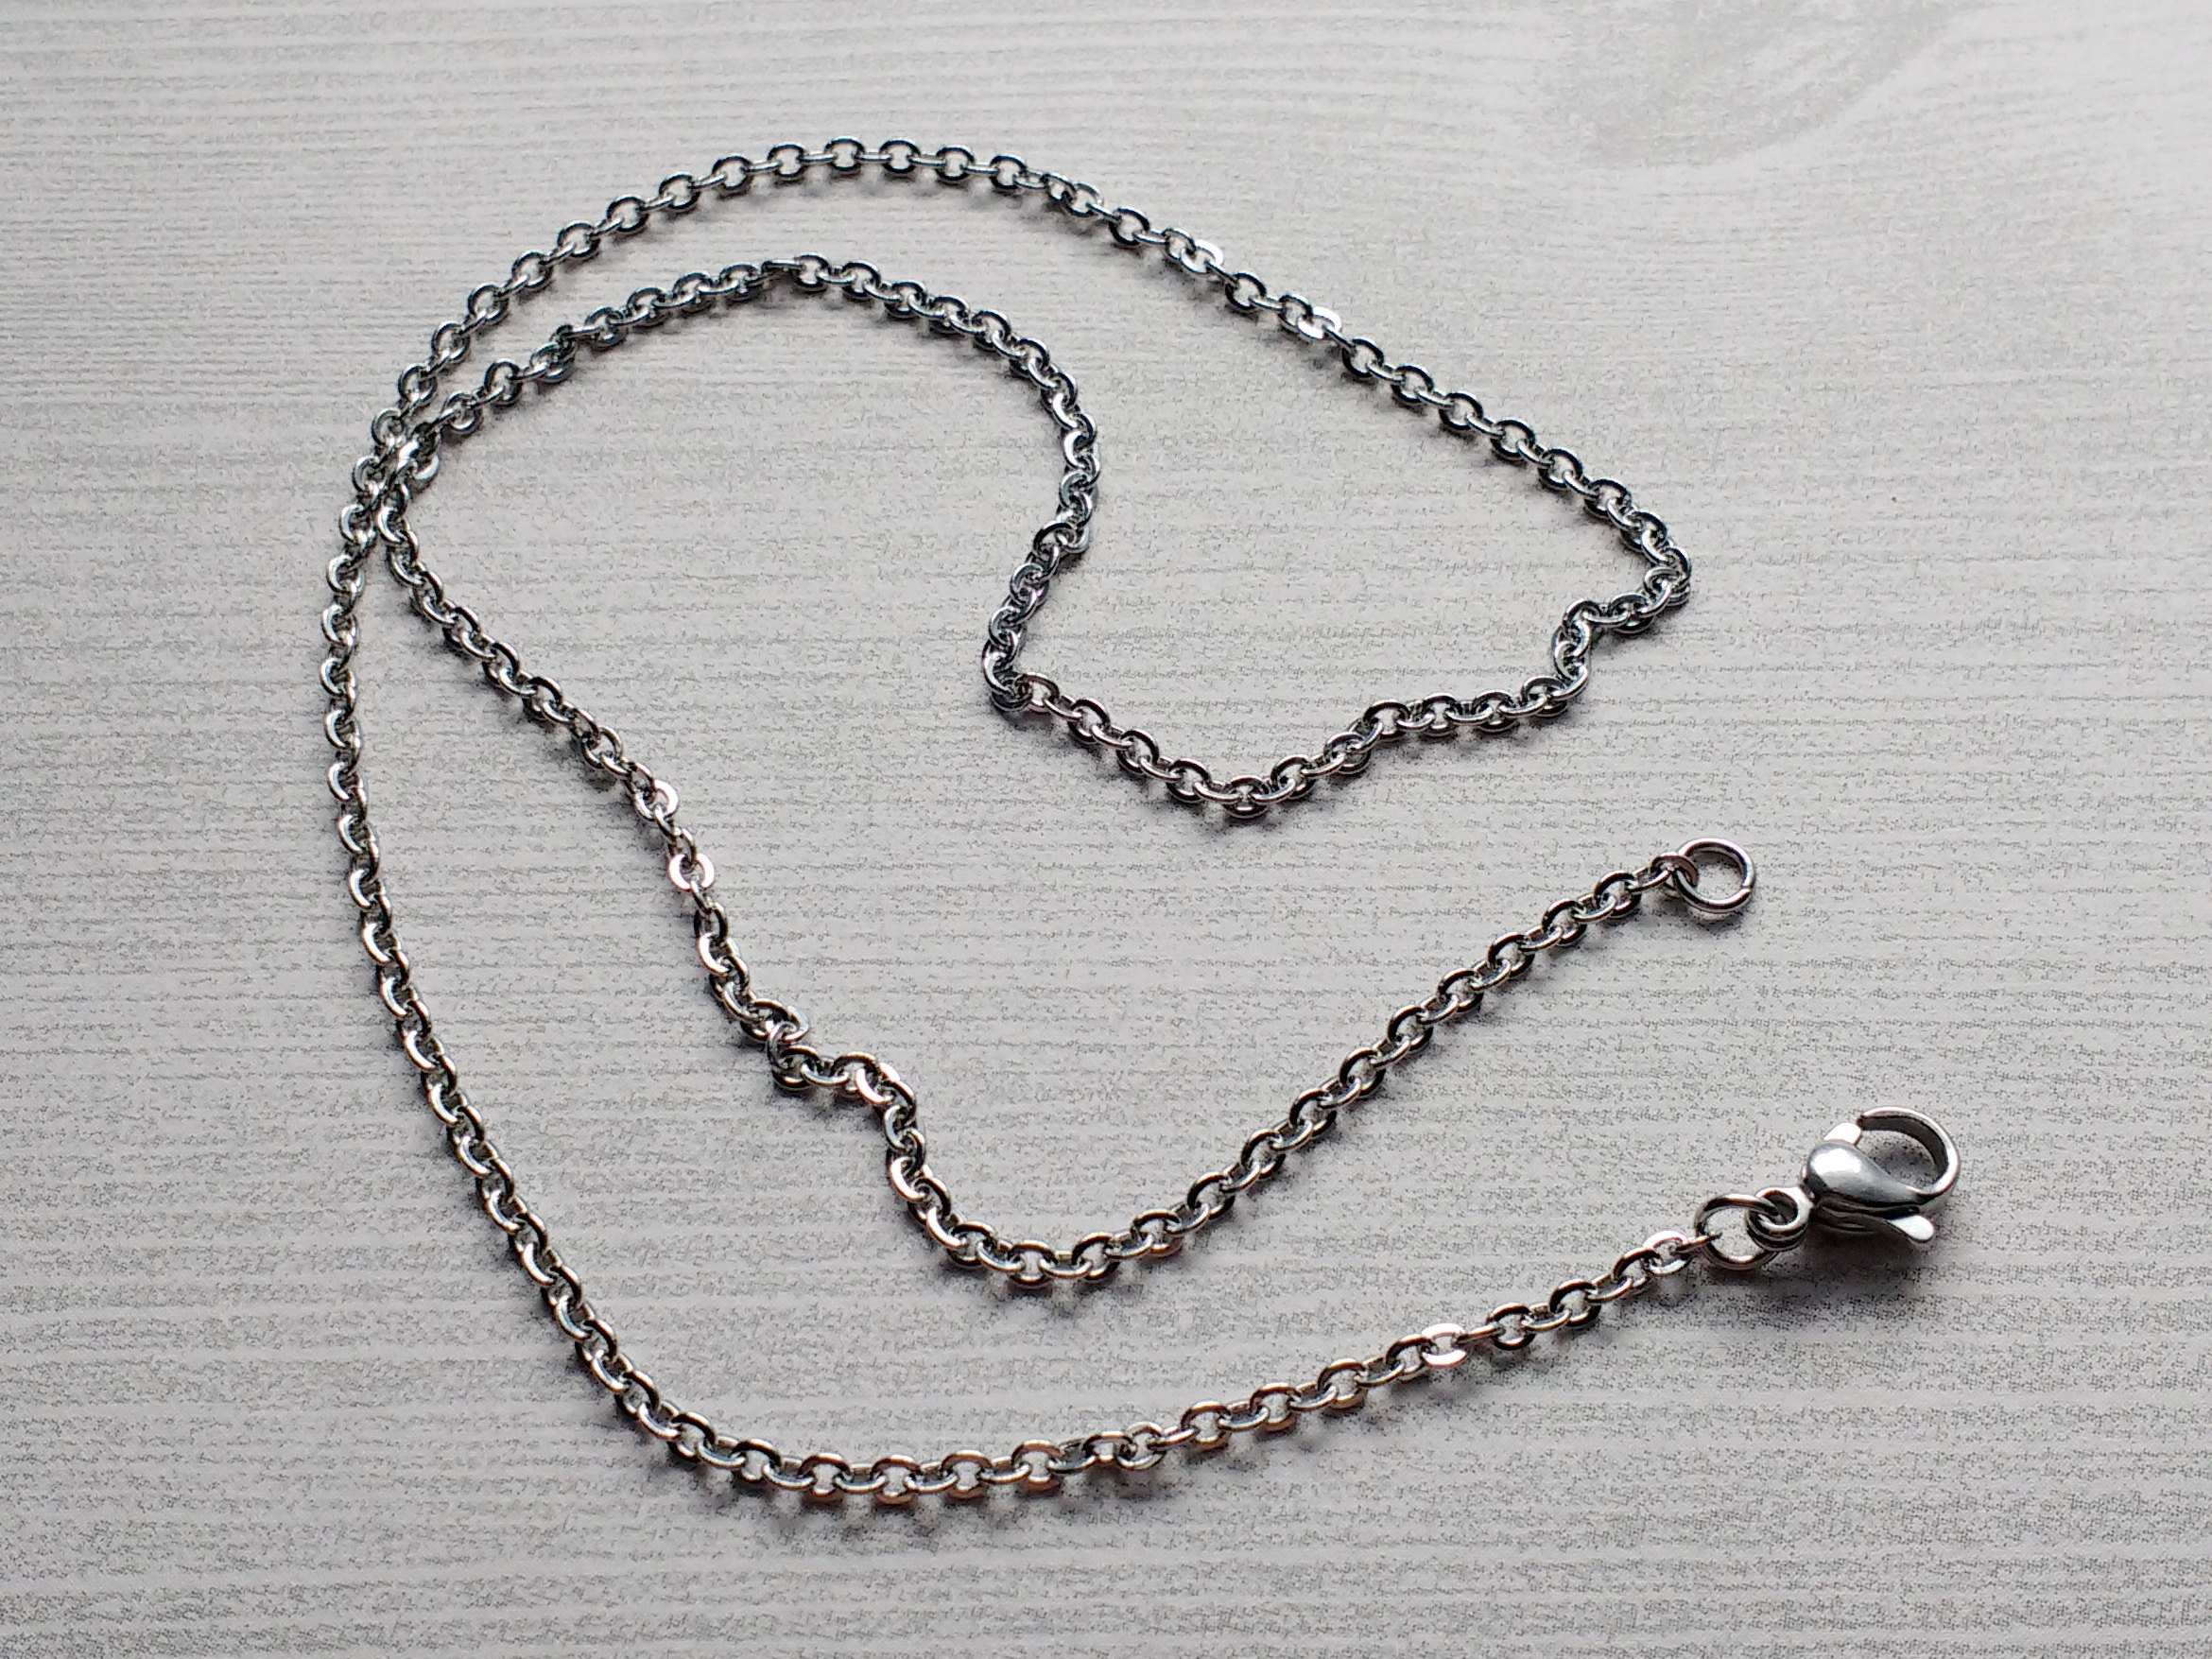 10 Cable Chain Necklaces (View 21 of 25)